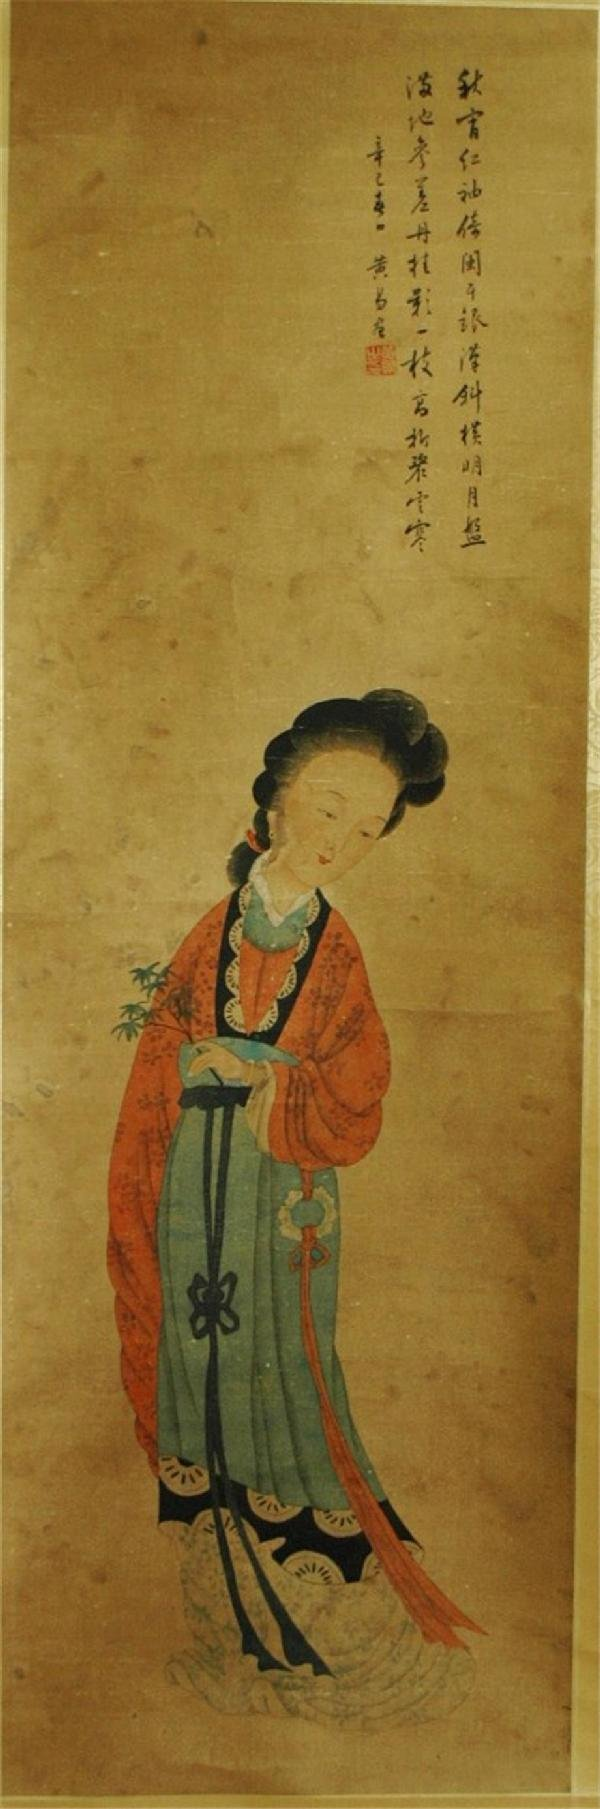 935: Chinese hanging scroll painting